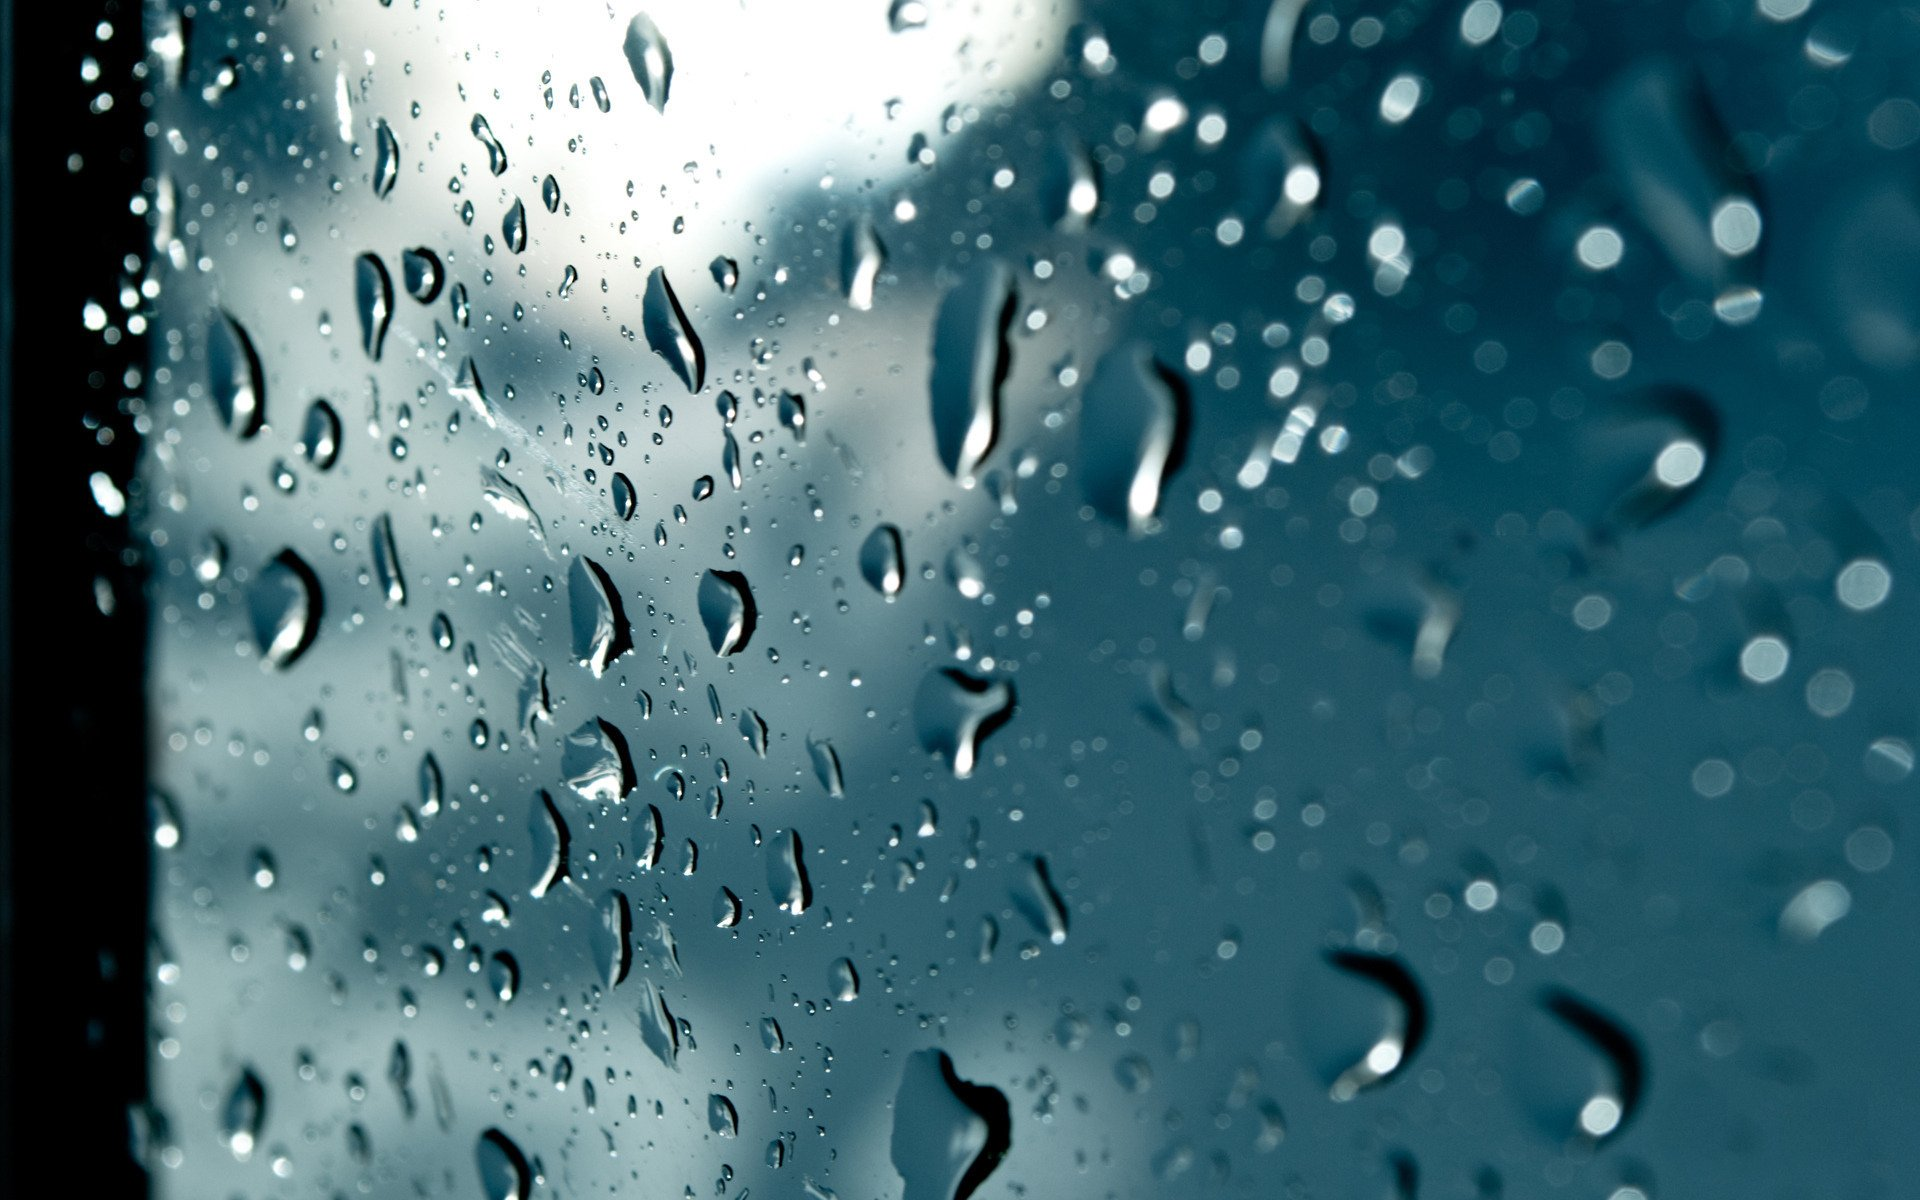 100 Raindrops Hd Wallpapers Background Images Wallpaper Abyss